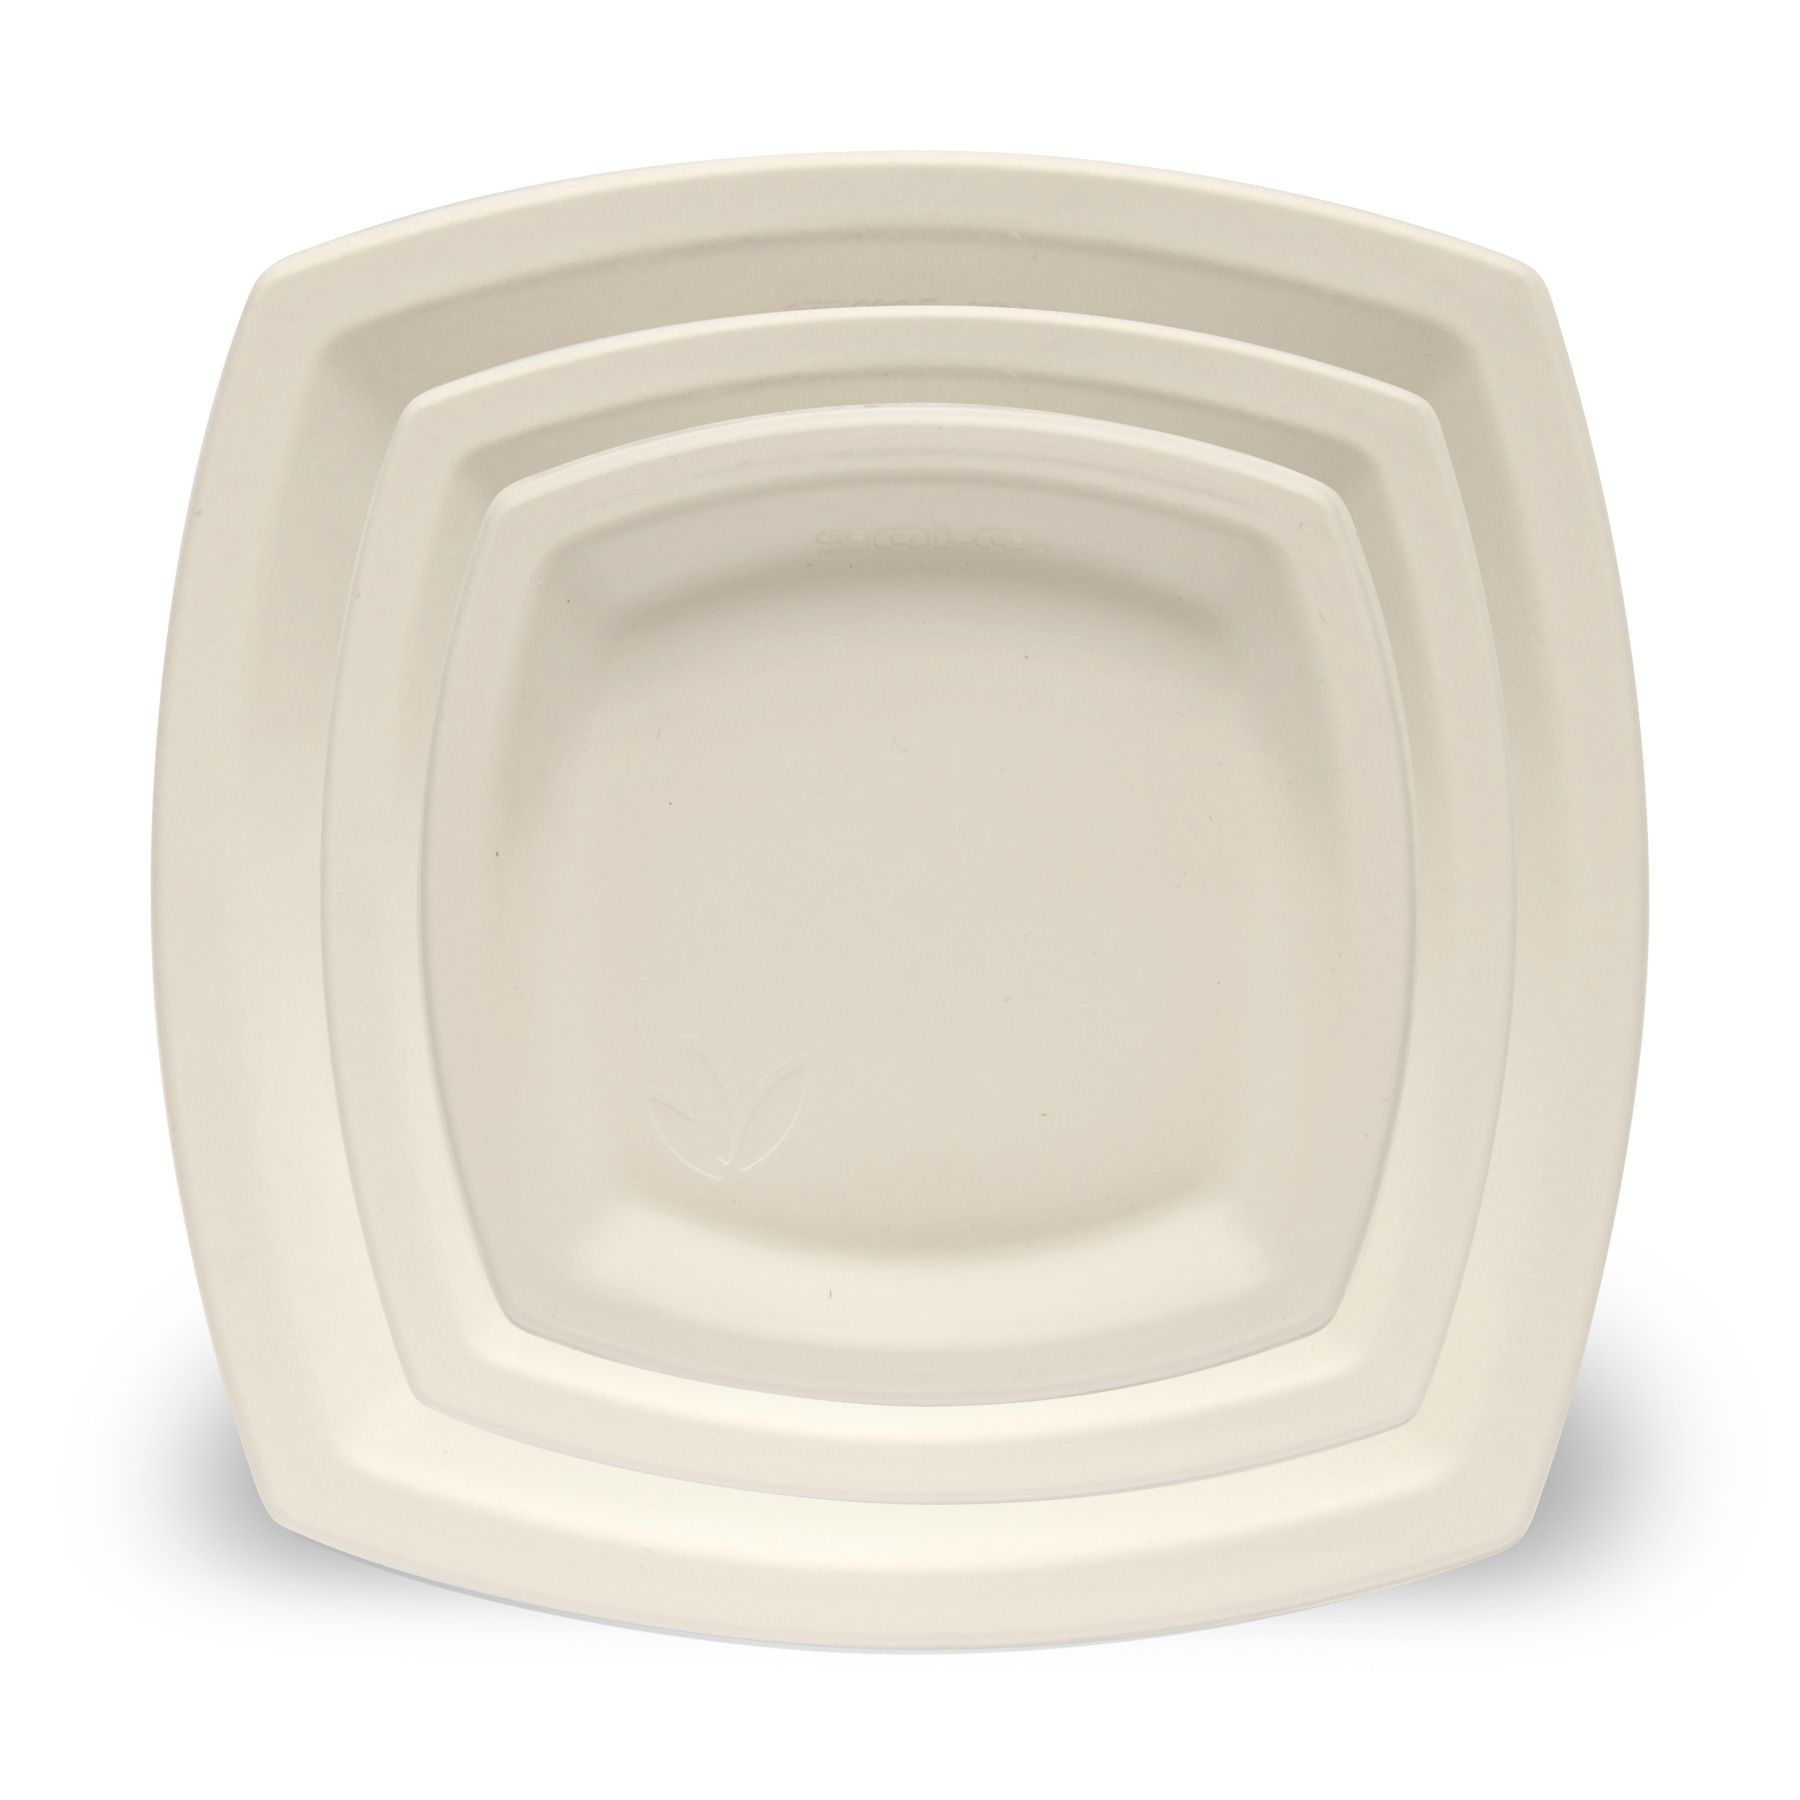 Earth-Friendly Dinnerware  sc 1 st  Good Housekeeping & Eco Freindly Plates - Best Compostable and Reusable Plates